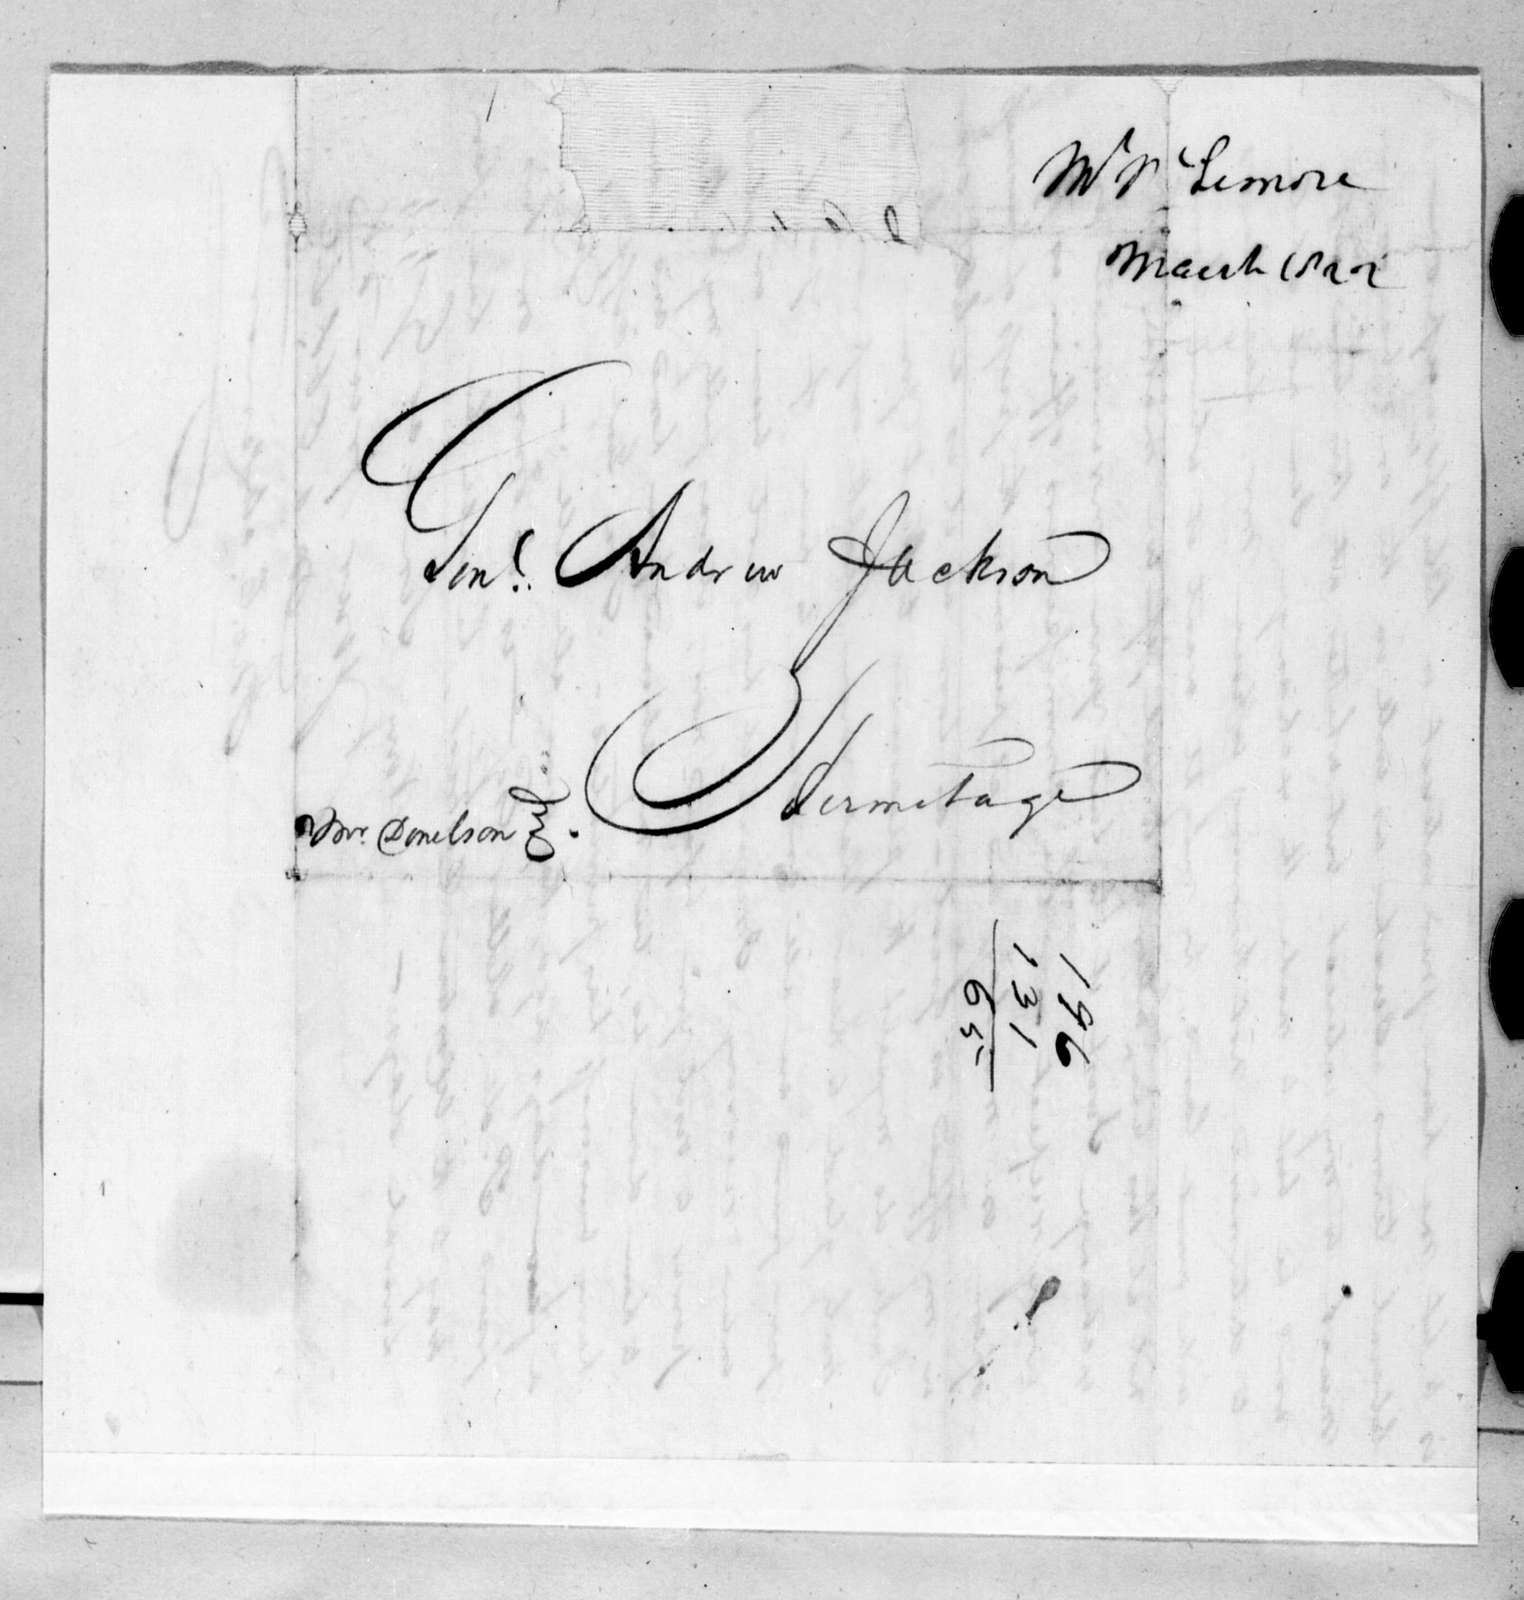 John Christmas McLemore to Andrew Jackson, March 29, 1822